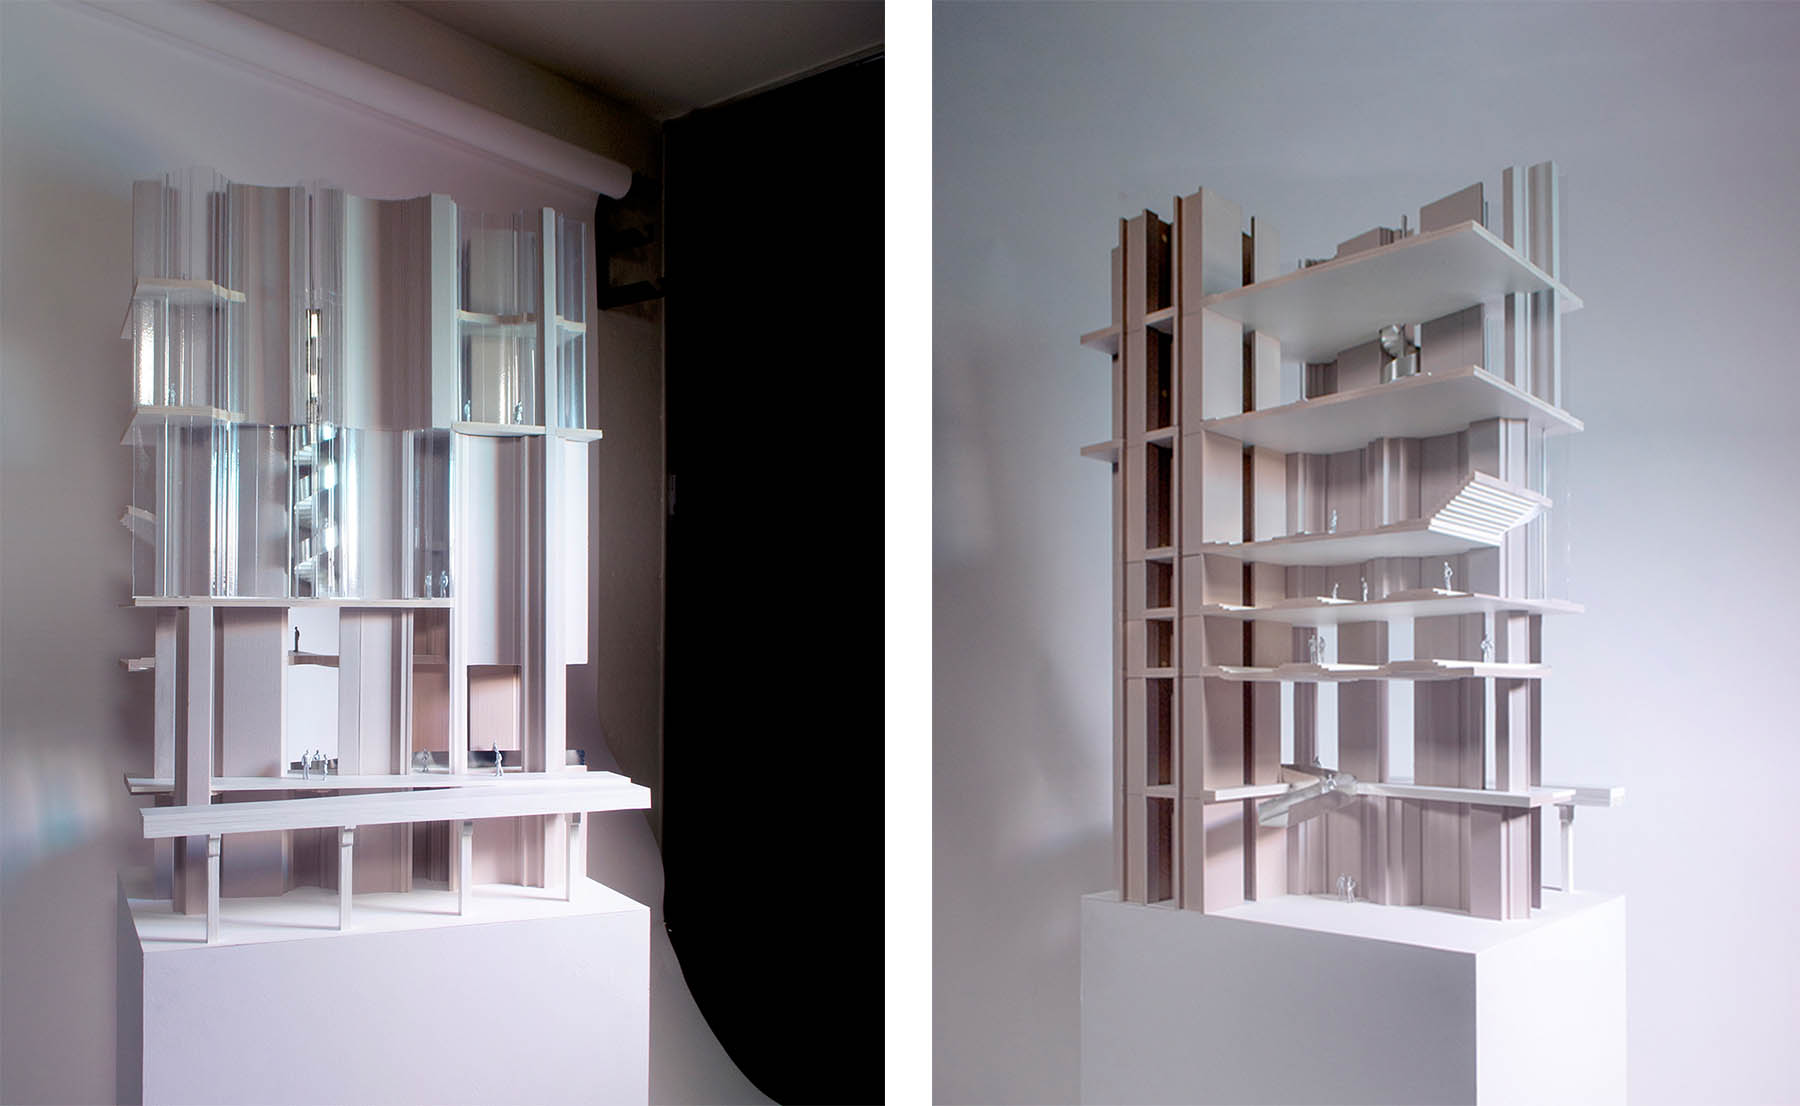 A fragment model of a facade and its attached interior space